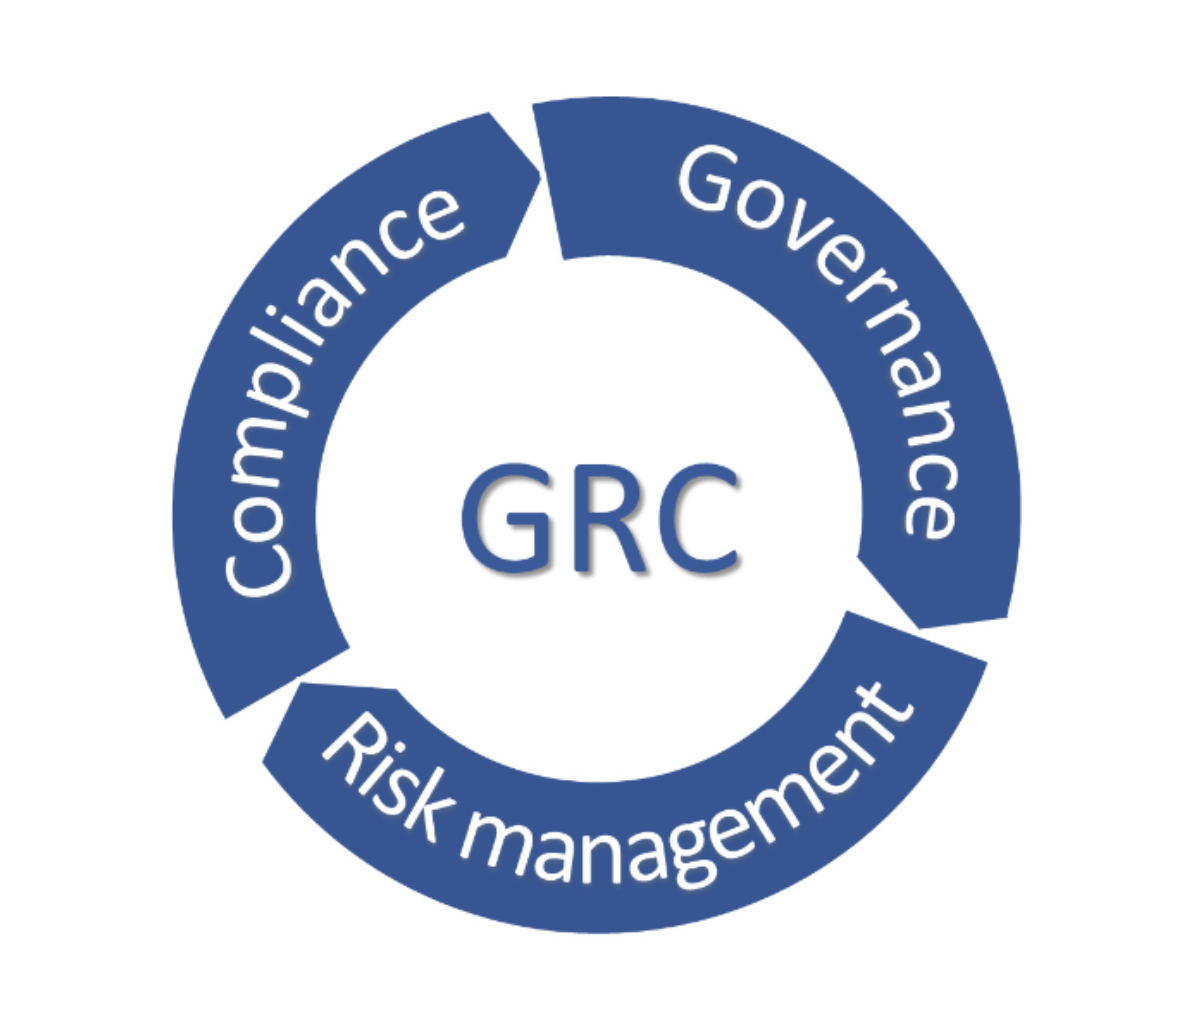 qualified audit academy grc